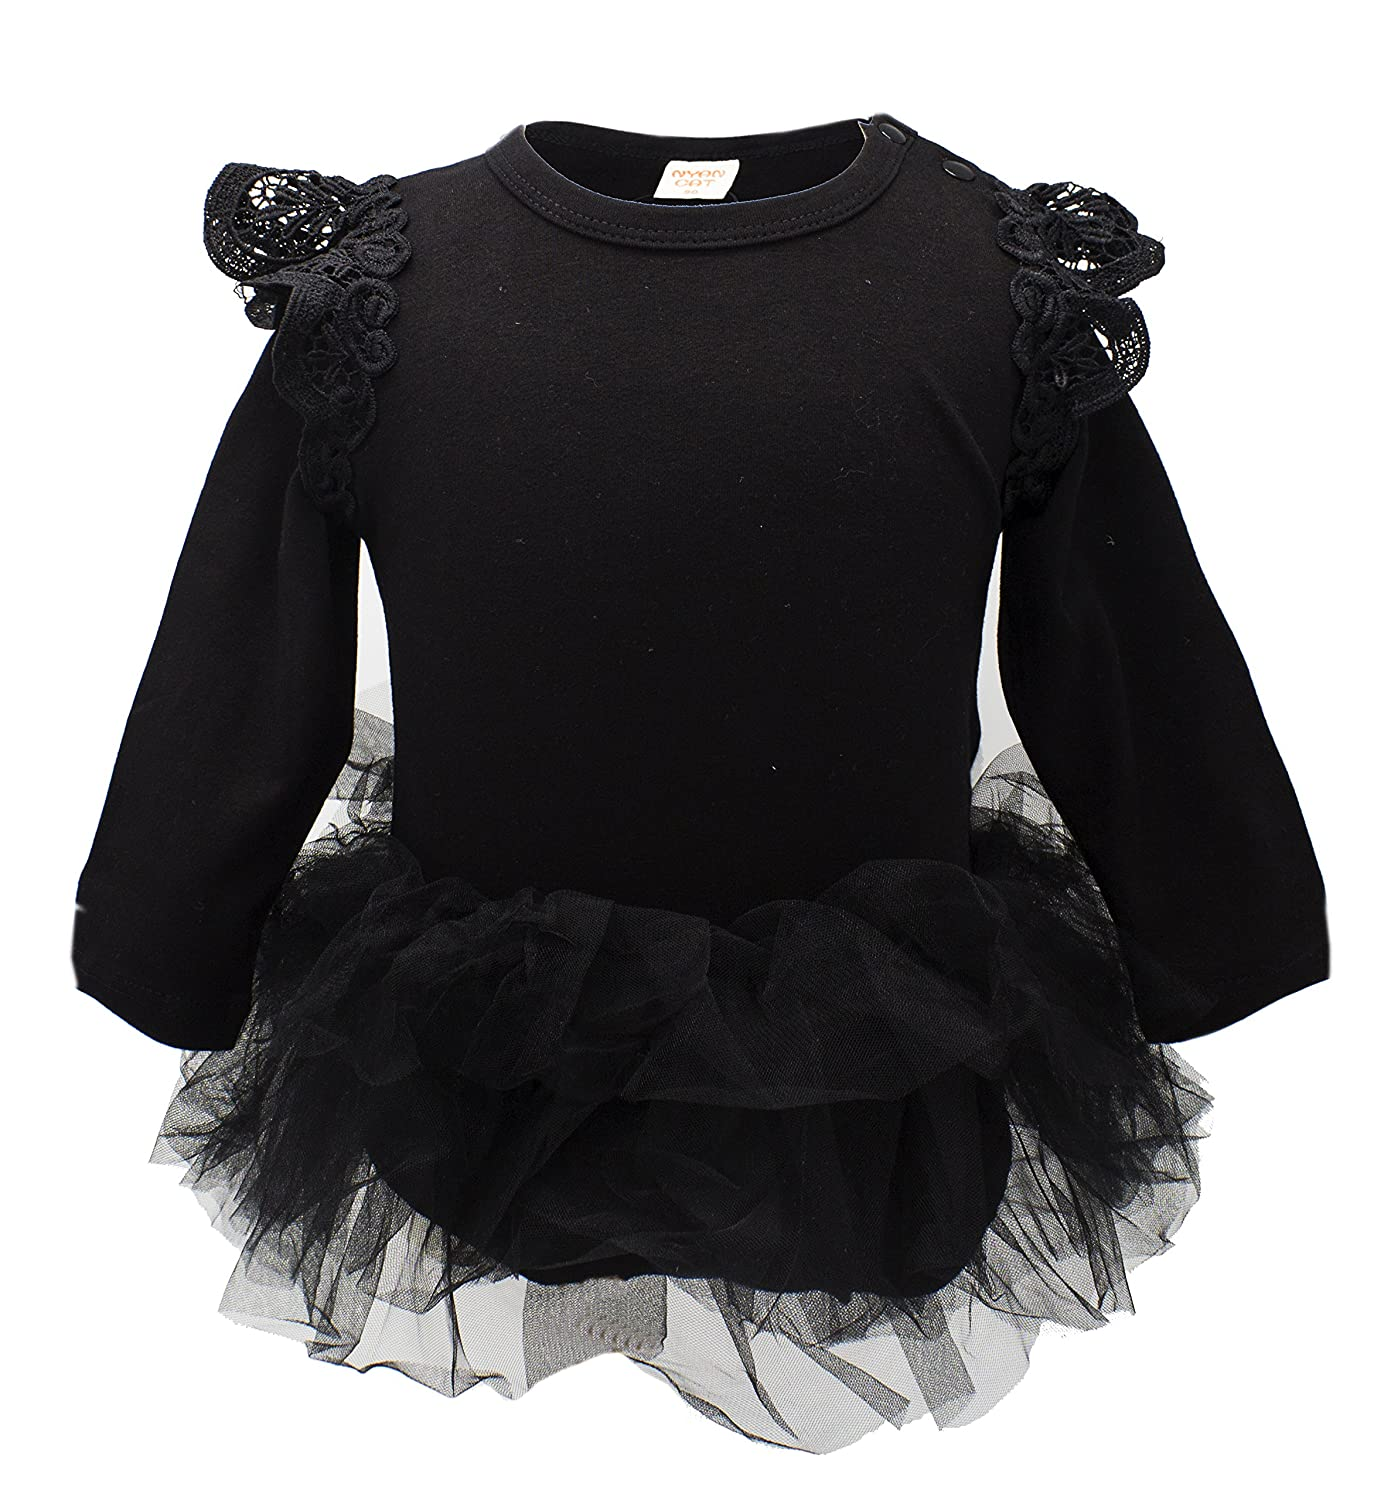 6f298c430 Super adorable baby girl long sleeve ruffle cotton romper with tulle tutu  skirt makes your baby girl comfortable and fashionable